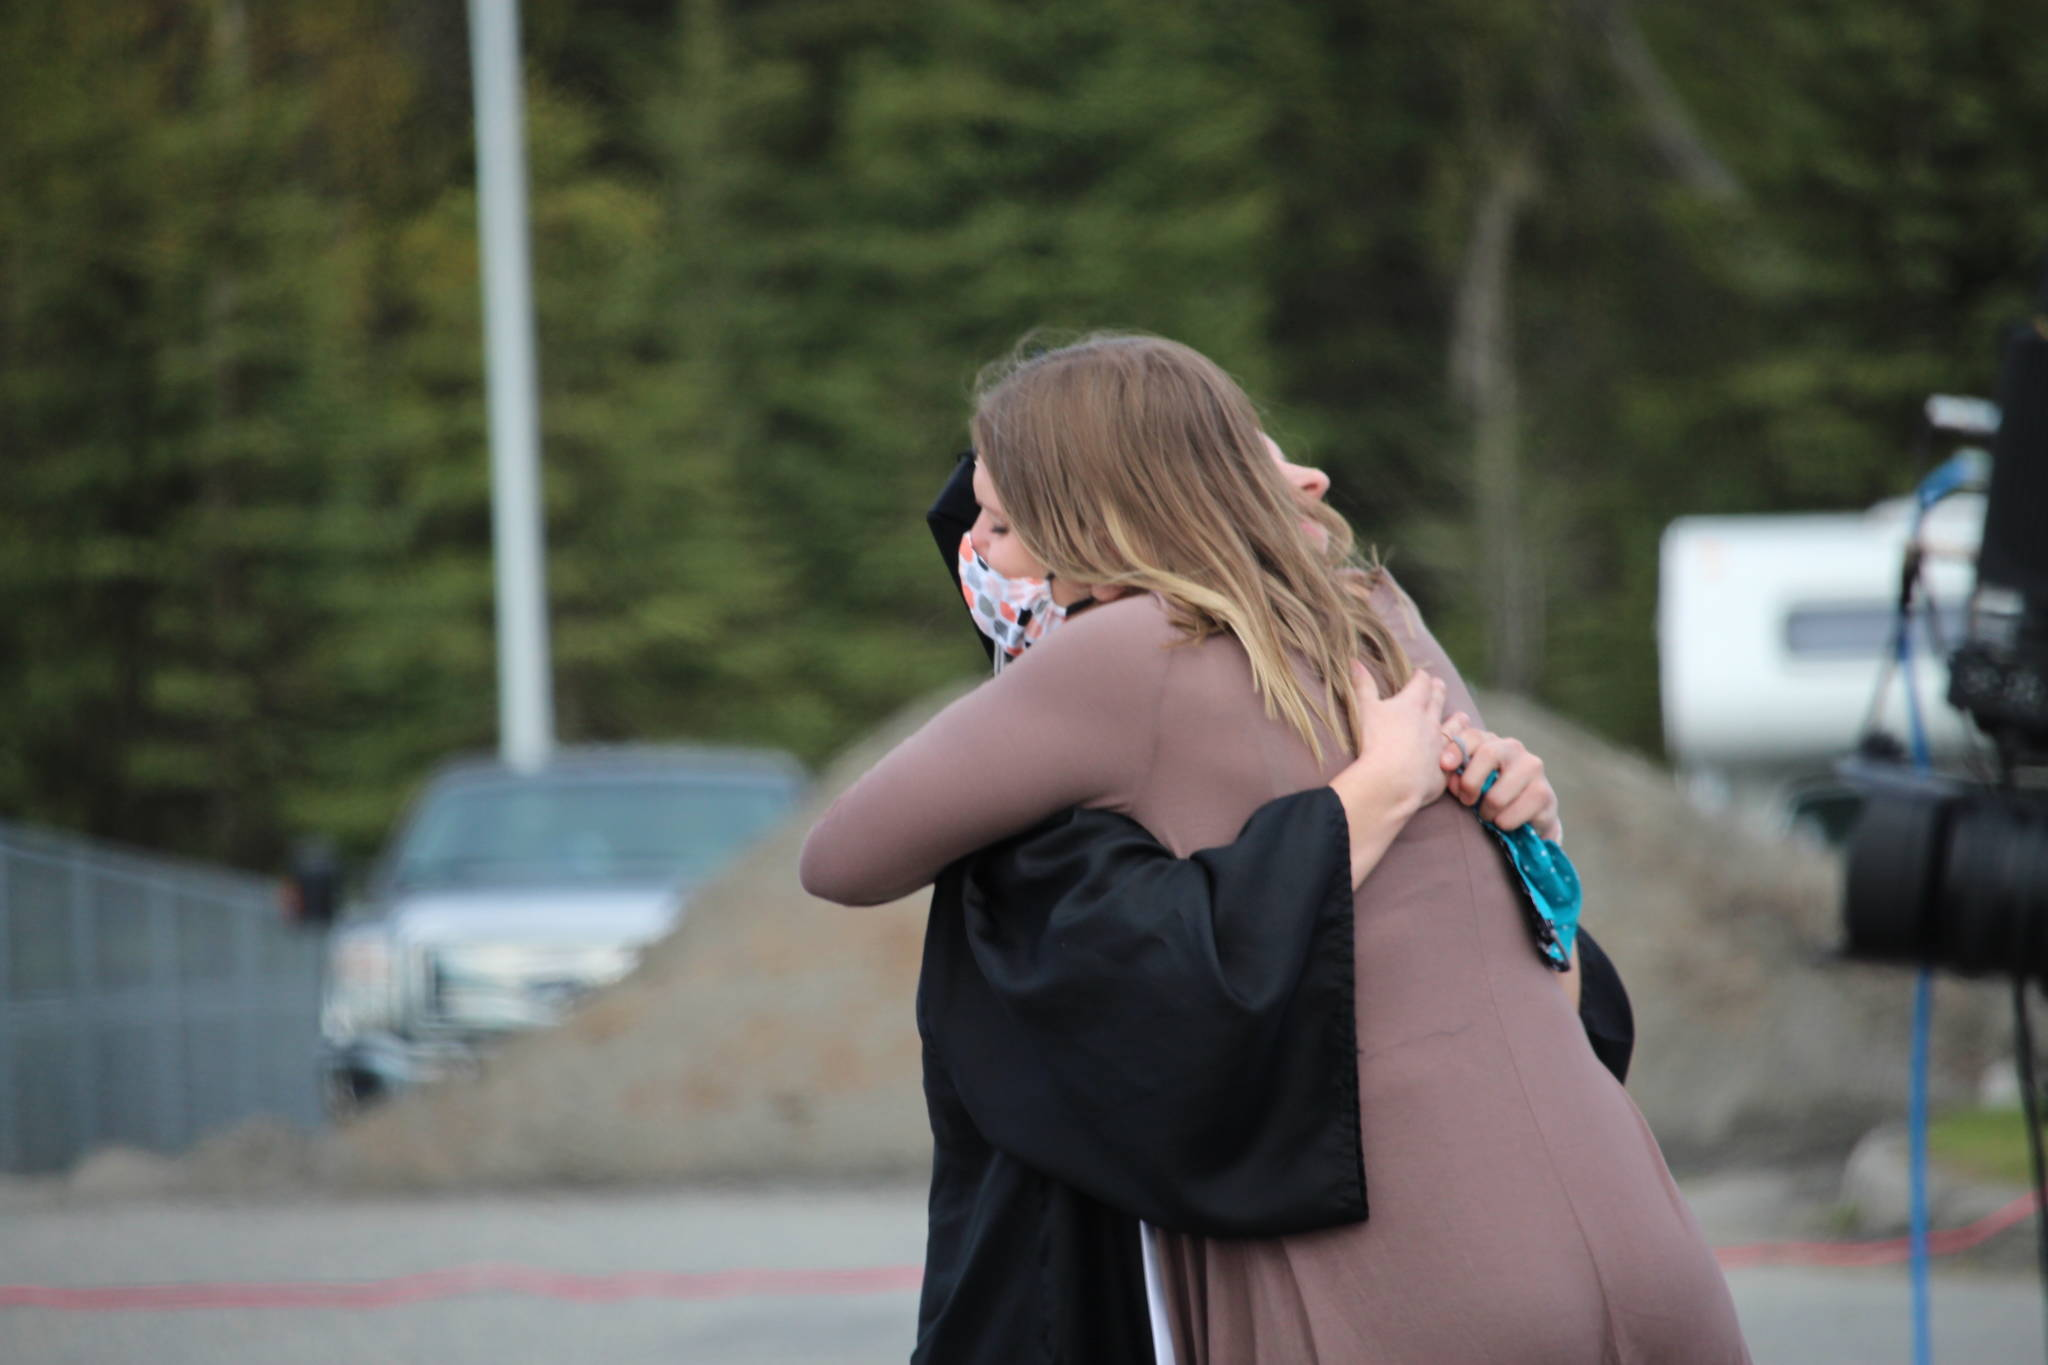 Class valedictorian America Jeffreys hugs her mom after giving a speech during the 2020 Nikiski High School Graduation Commencement Ceremony in Nikiski, Alaska on May 19, 2020. (Photo by Brian Mazurek/Peninsula Clarion)